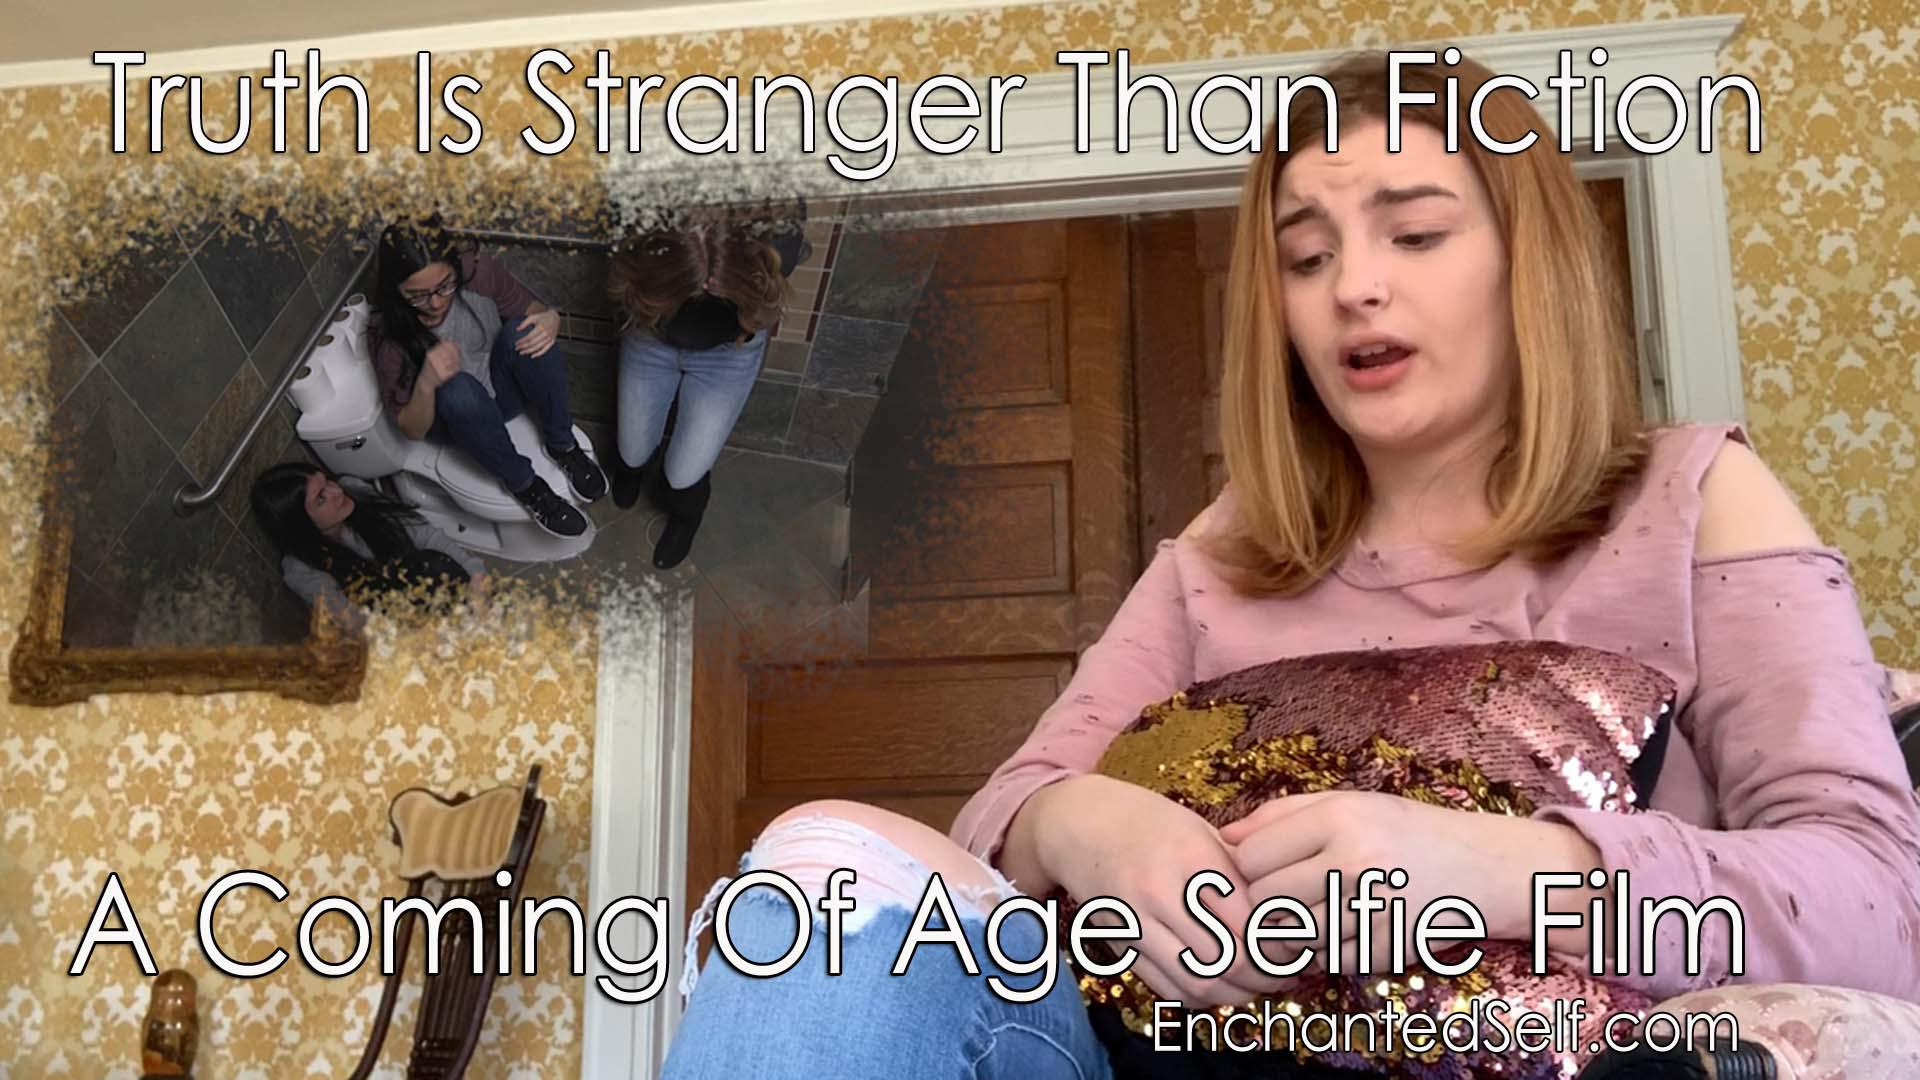 Truth is Stranger Than Fiction, A Coming of Age, Selfie Film